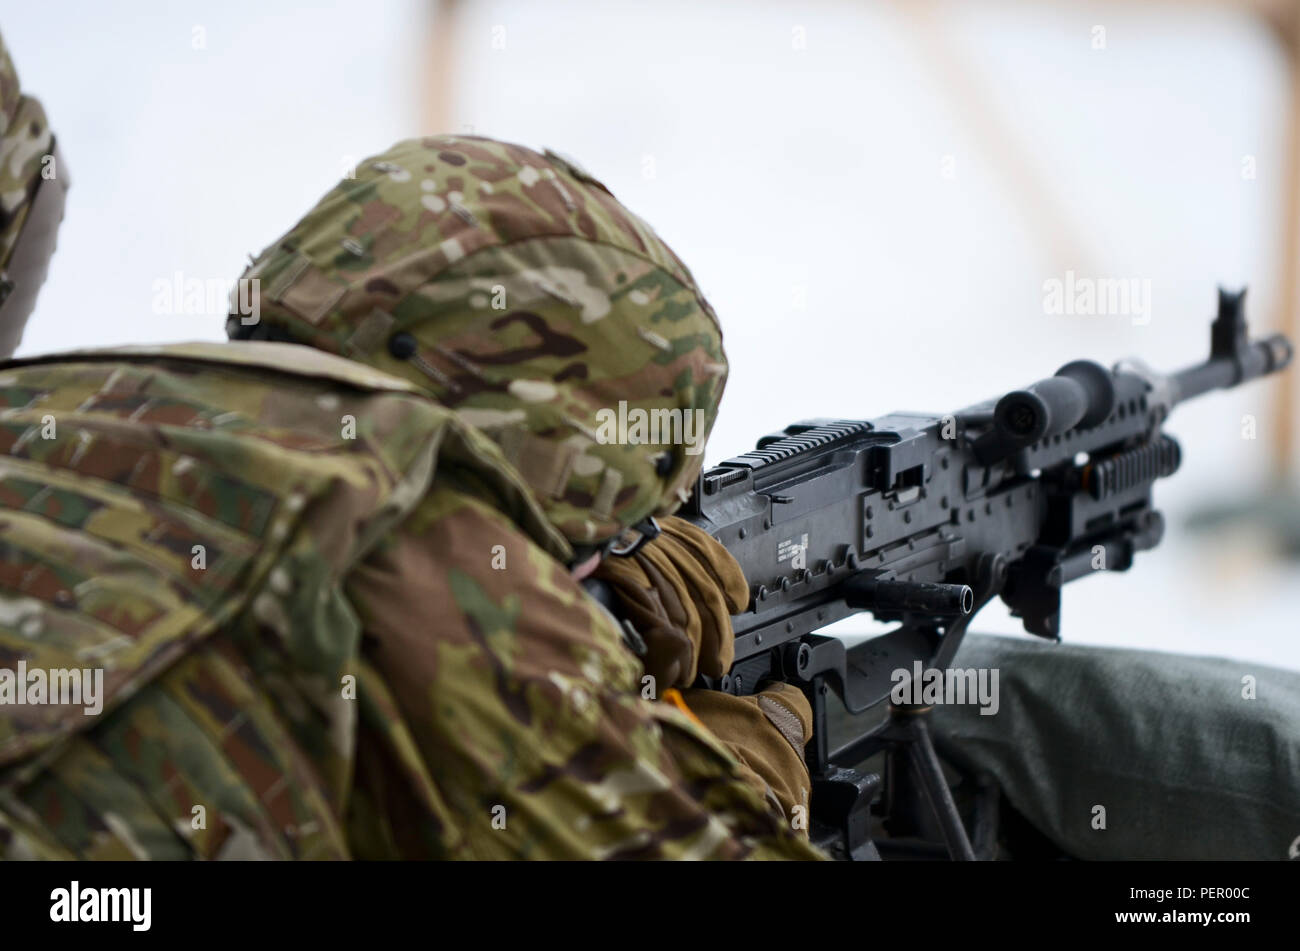 Pvt. Traverse Jarman, a scout with 3rd Squadron, 2nd Cavalry Regiment, stationed at Vilseck, Germany, originally from Crestwood, Ill., fires an M240 machine gun at a target during a training exercise at Adazi Training Area in Latvia, Jan. 25, 2016. (U.S. Army photo by Staff Sgt. Steven Colvin/Released) - Stock Image